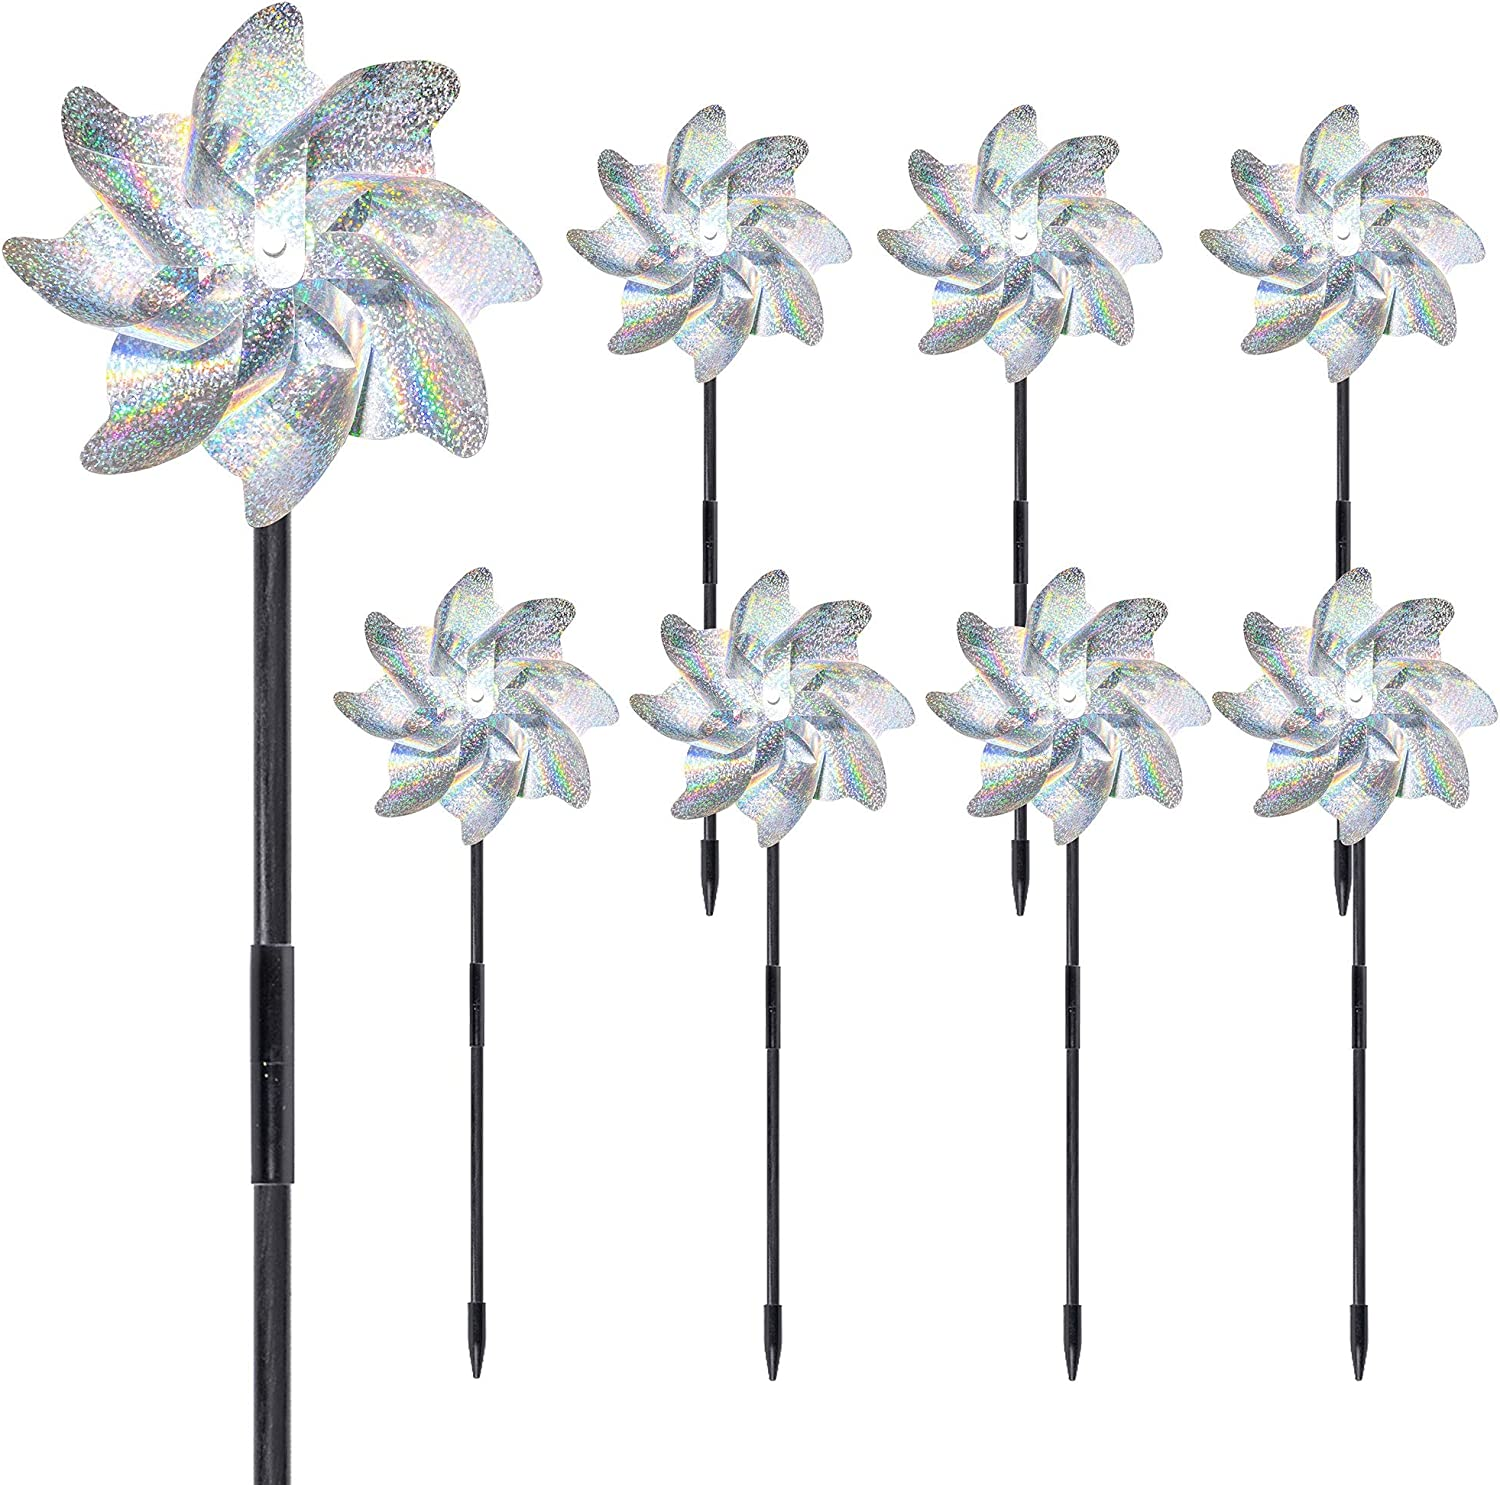 FUNPENY Bird Blinder Repellent Pinwheels, Effectively Reflective Pinwheels, Set of 8 Sparkly Holographic Pin Wheel Spinners Scare Off Birds and Pests for Garden Patio Yard Farm